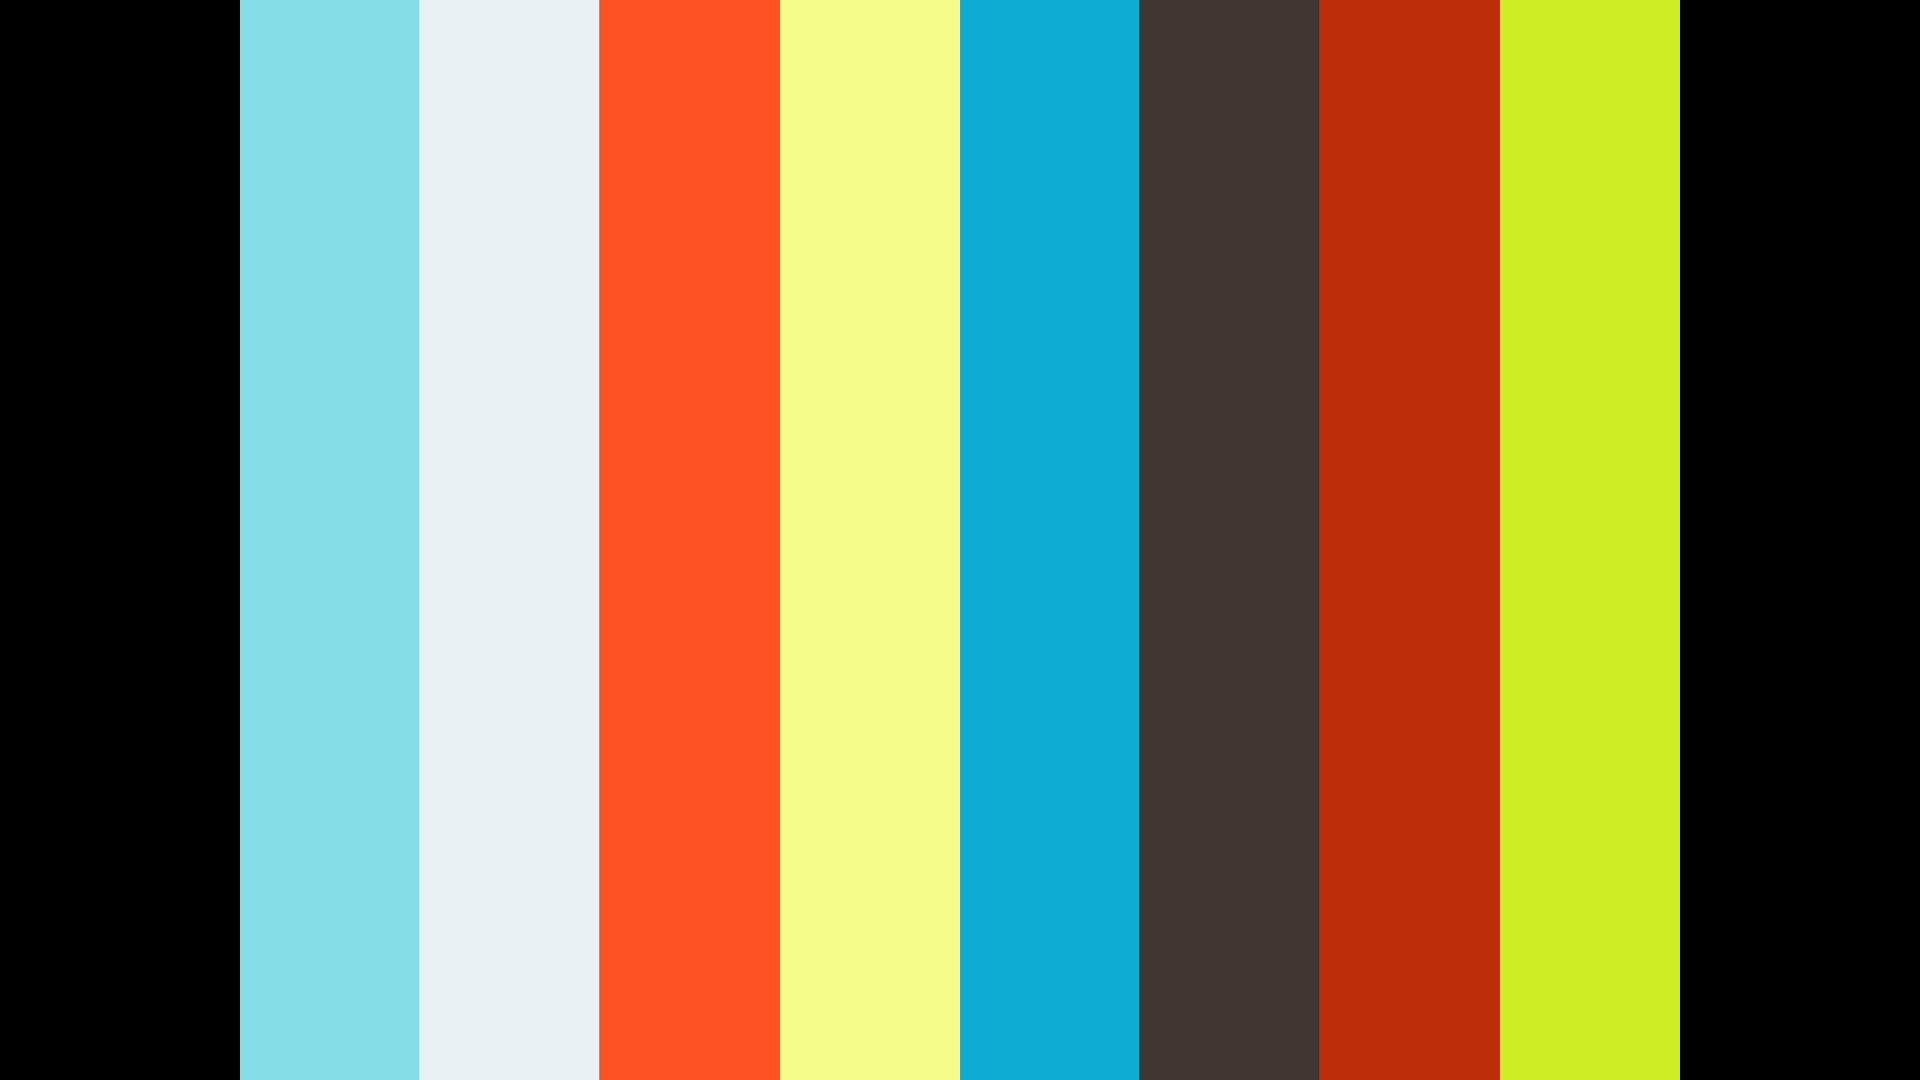 Screaming Dream (8A), Froggatt Edge, Peak District.